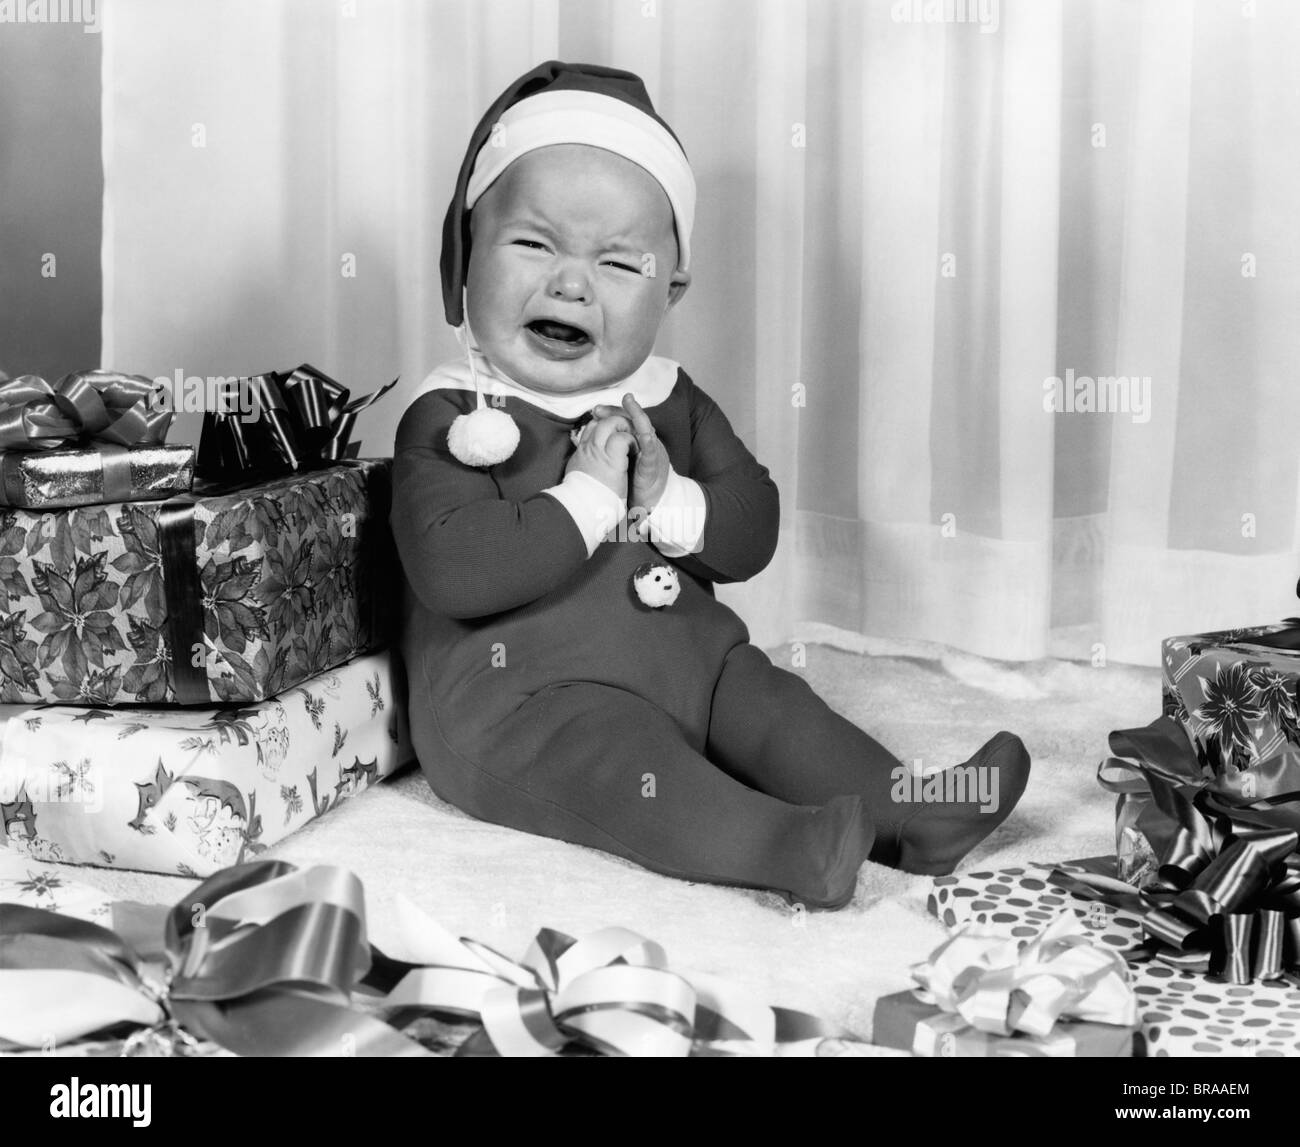 1950s 1960s CRYING BABY DRESSED LIKE SANTA CLAUS - Stock Image